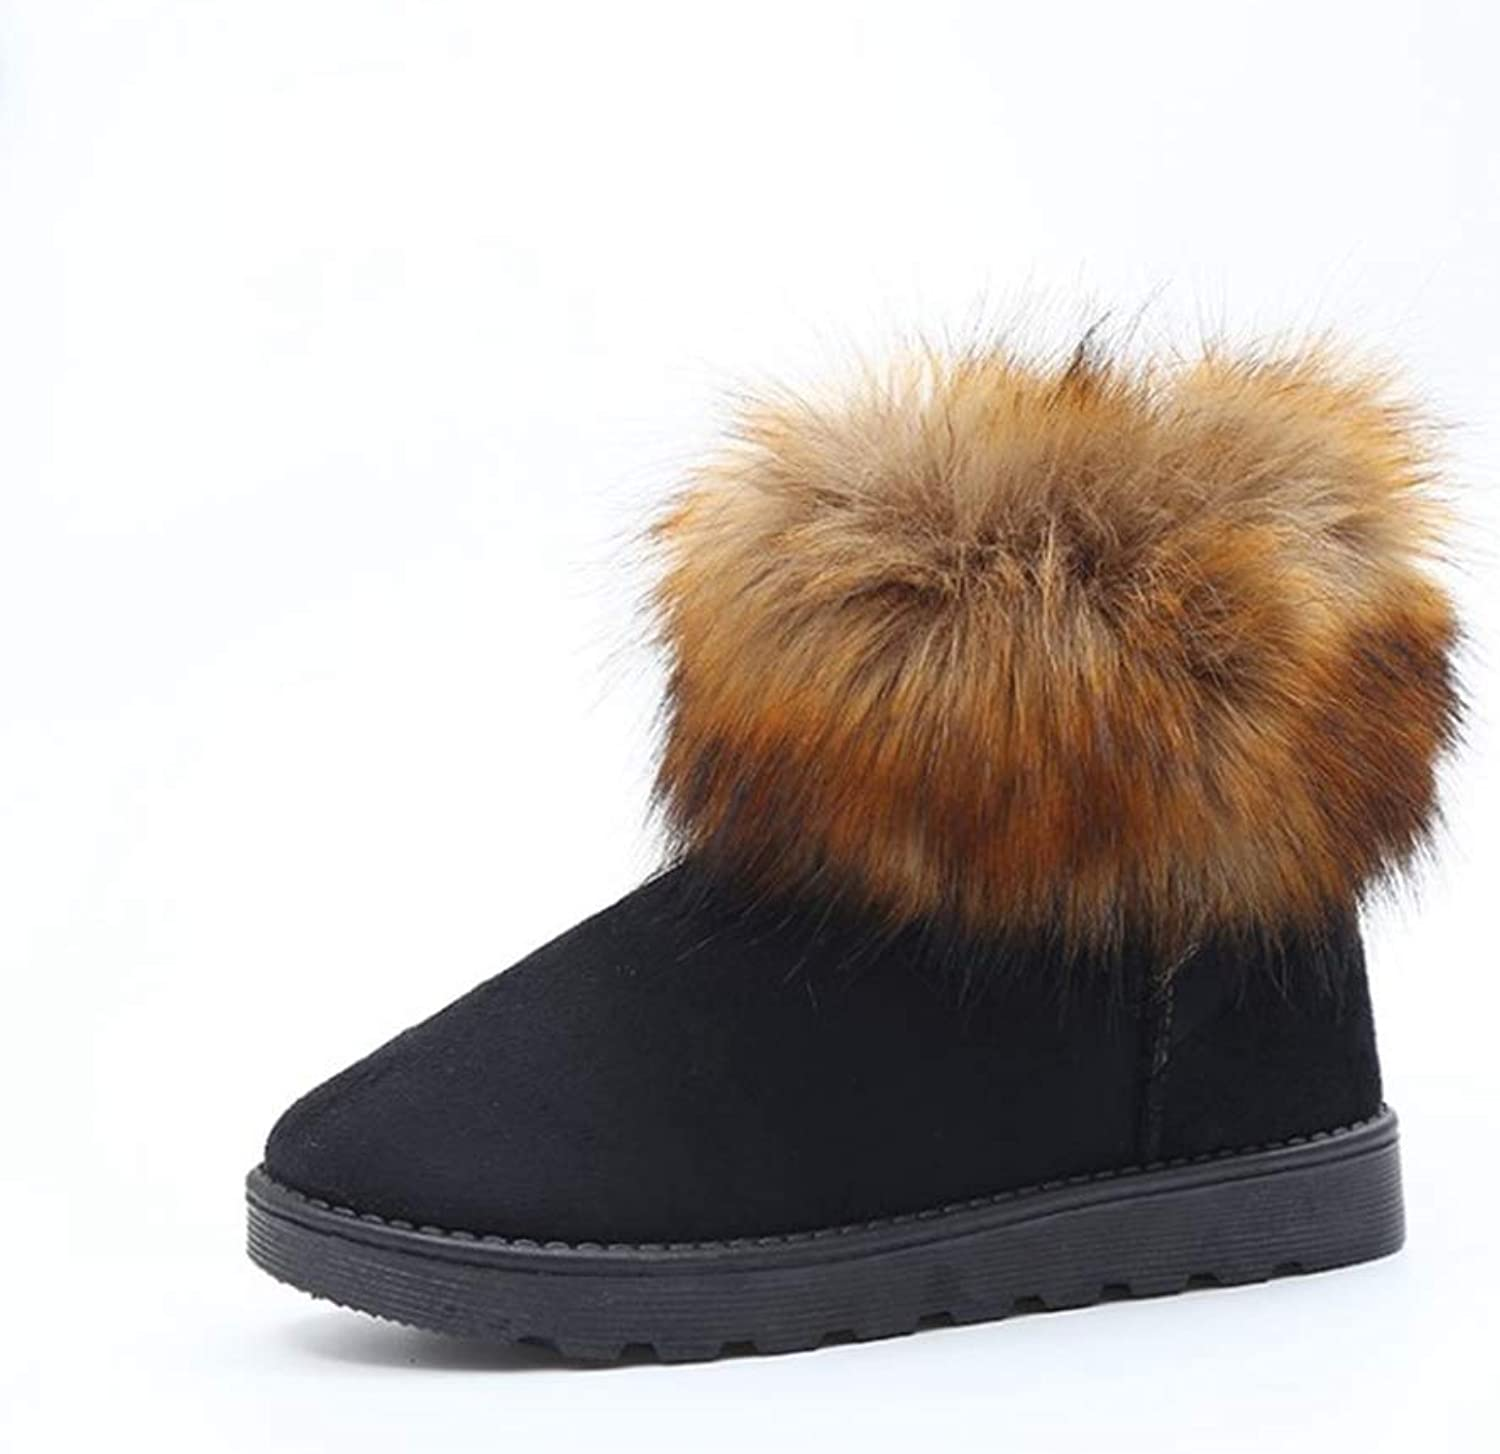 Zarbrina Womens Fur Lined Flat Platform Ankle Boots Winter Fashion Round Toe Rubber Sole Short Plush Slip On Warm Snow shoes